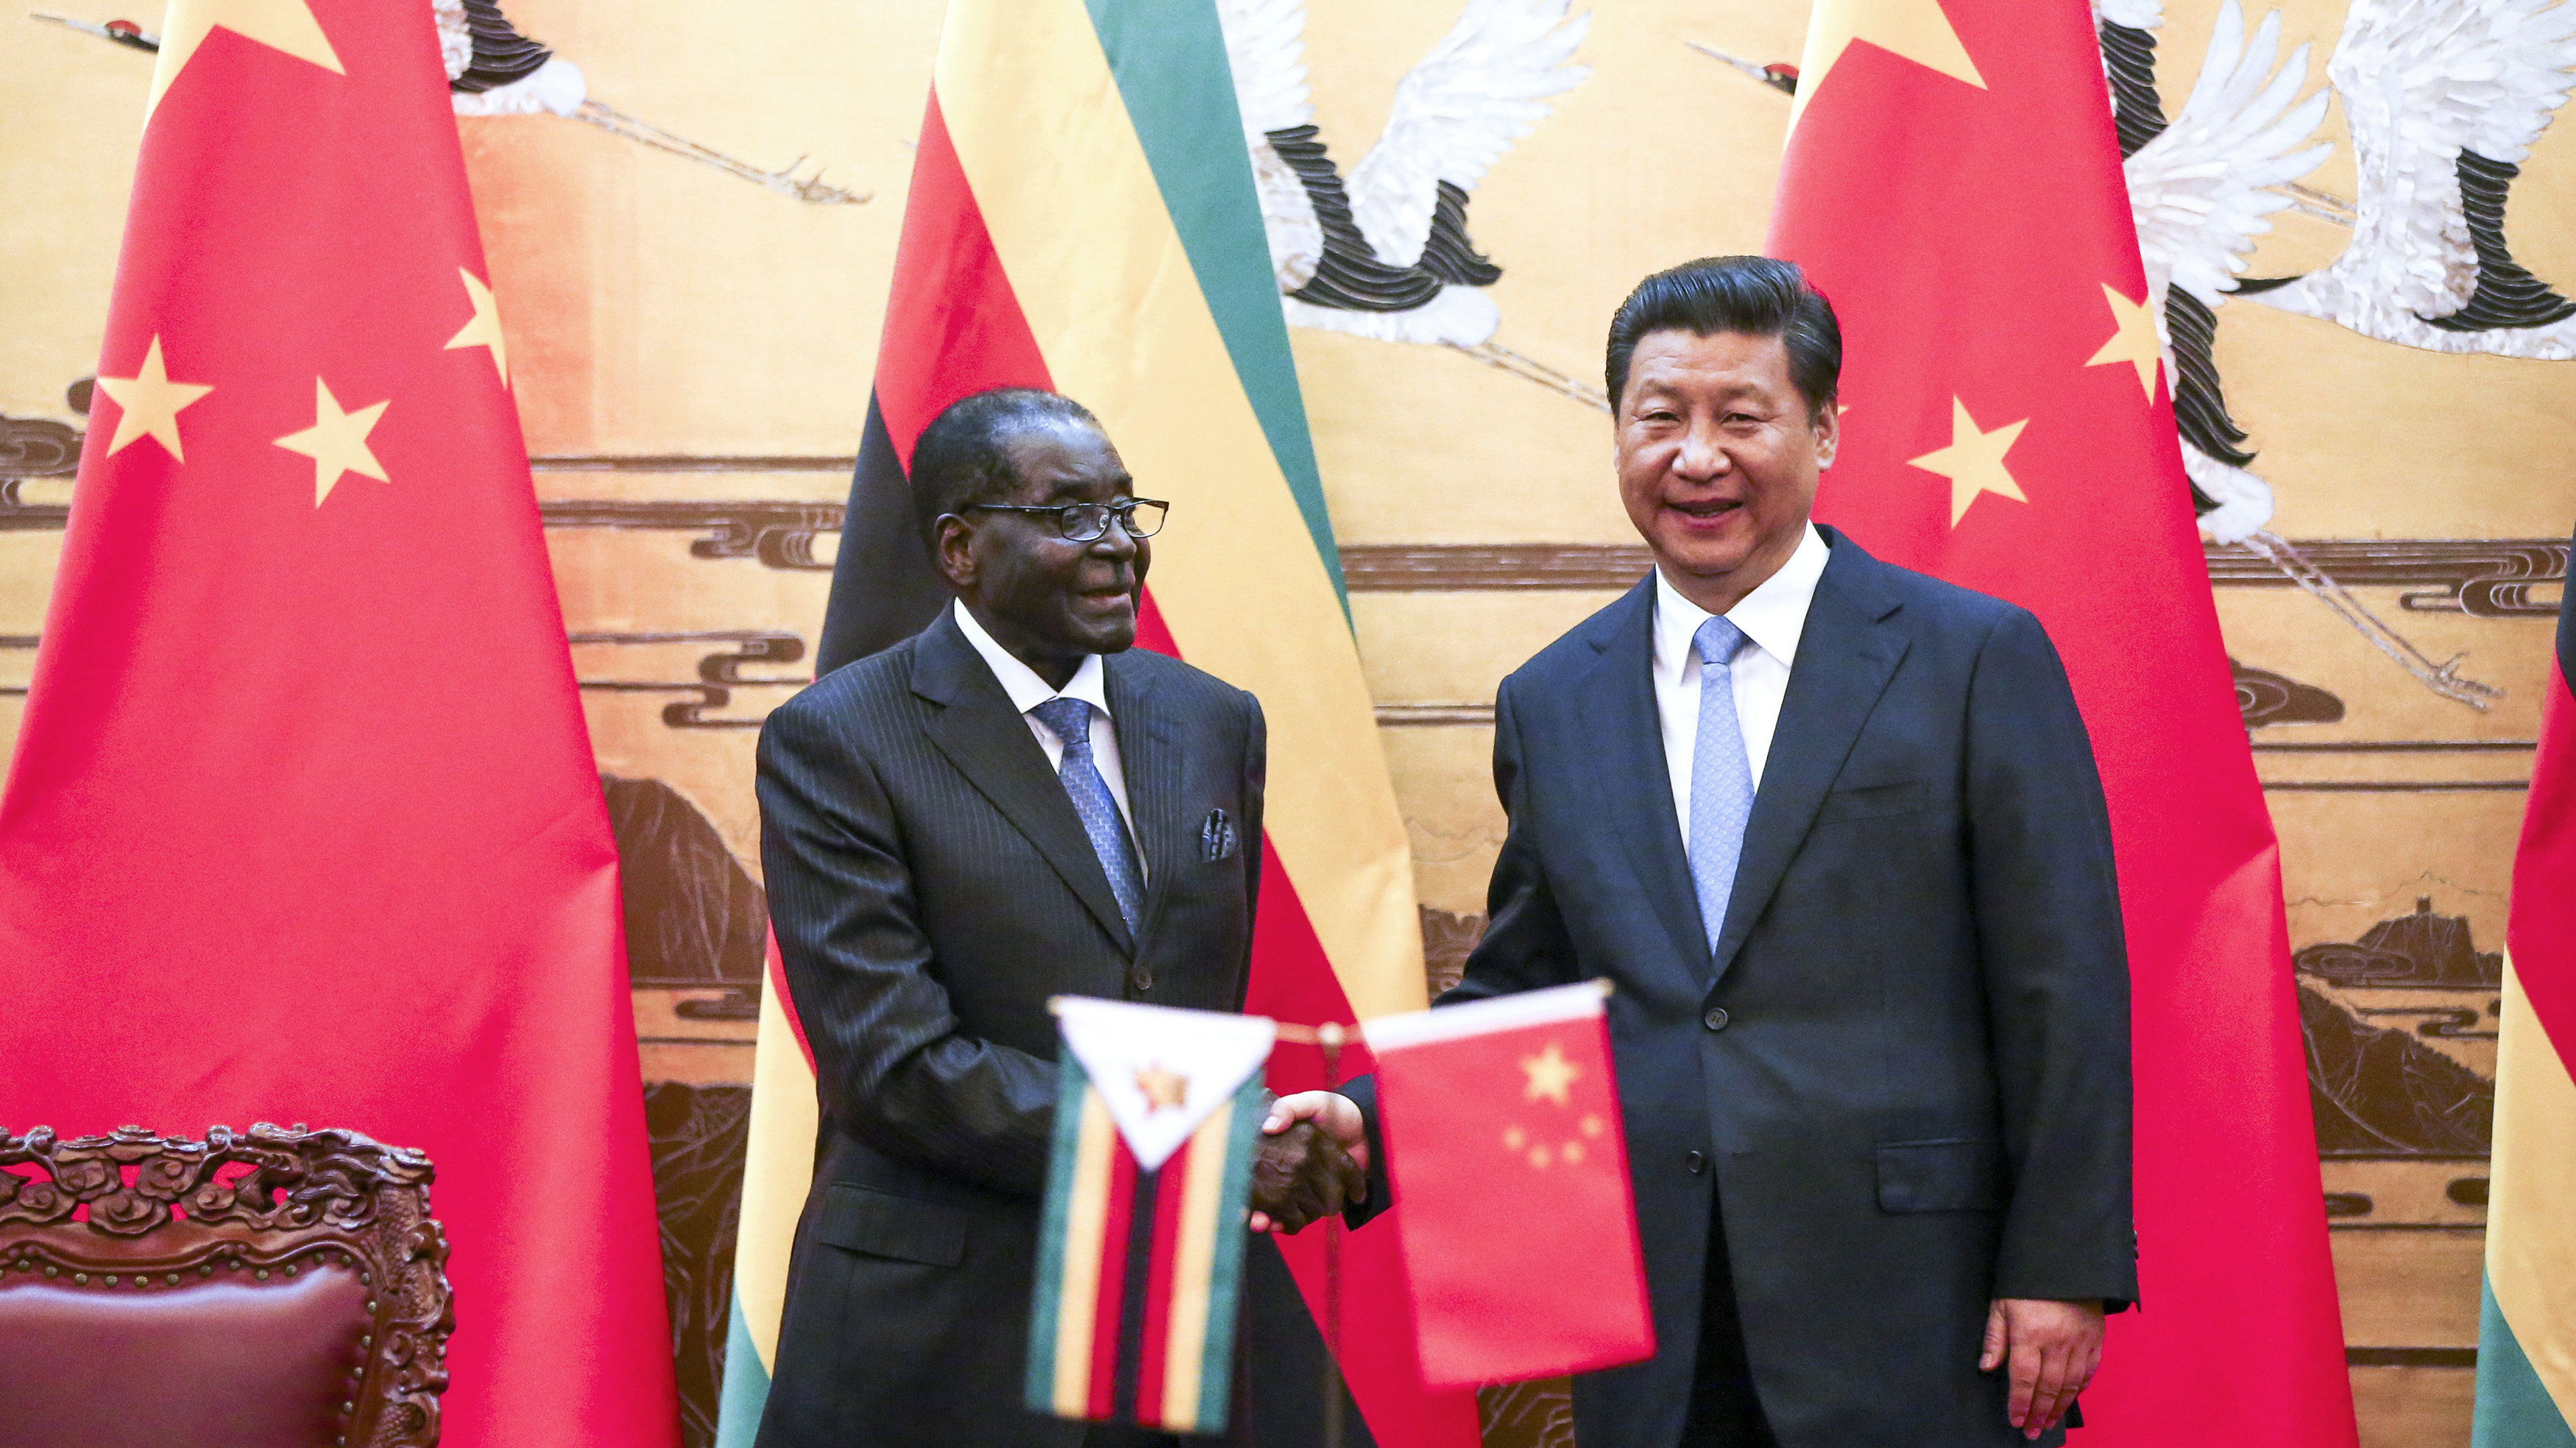 Zimbabwe's President Robert Mugabe (L) and his Chinese counterpart Xi Jinping shake hands during a signing ceremony at the Great Hall of the People in Beijing August 25, 2014.